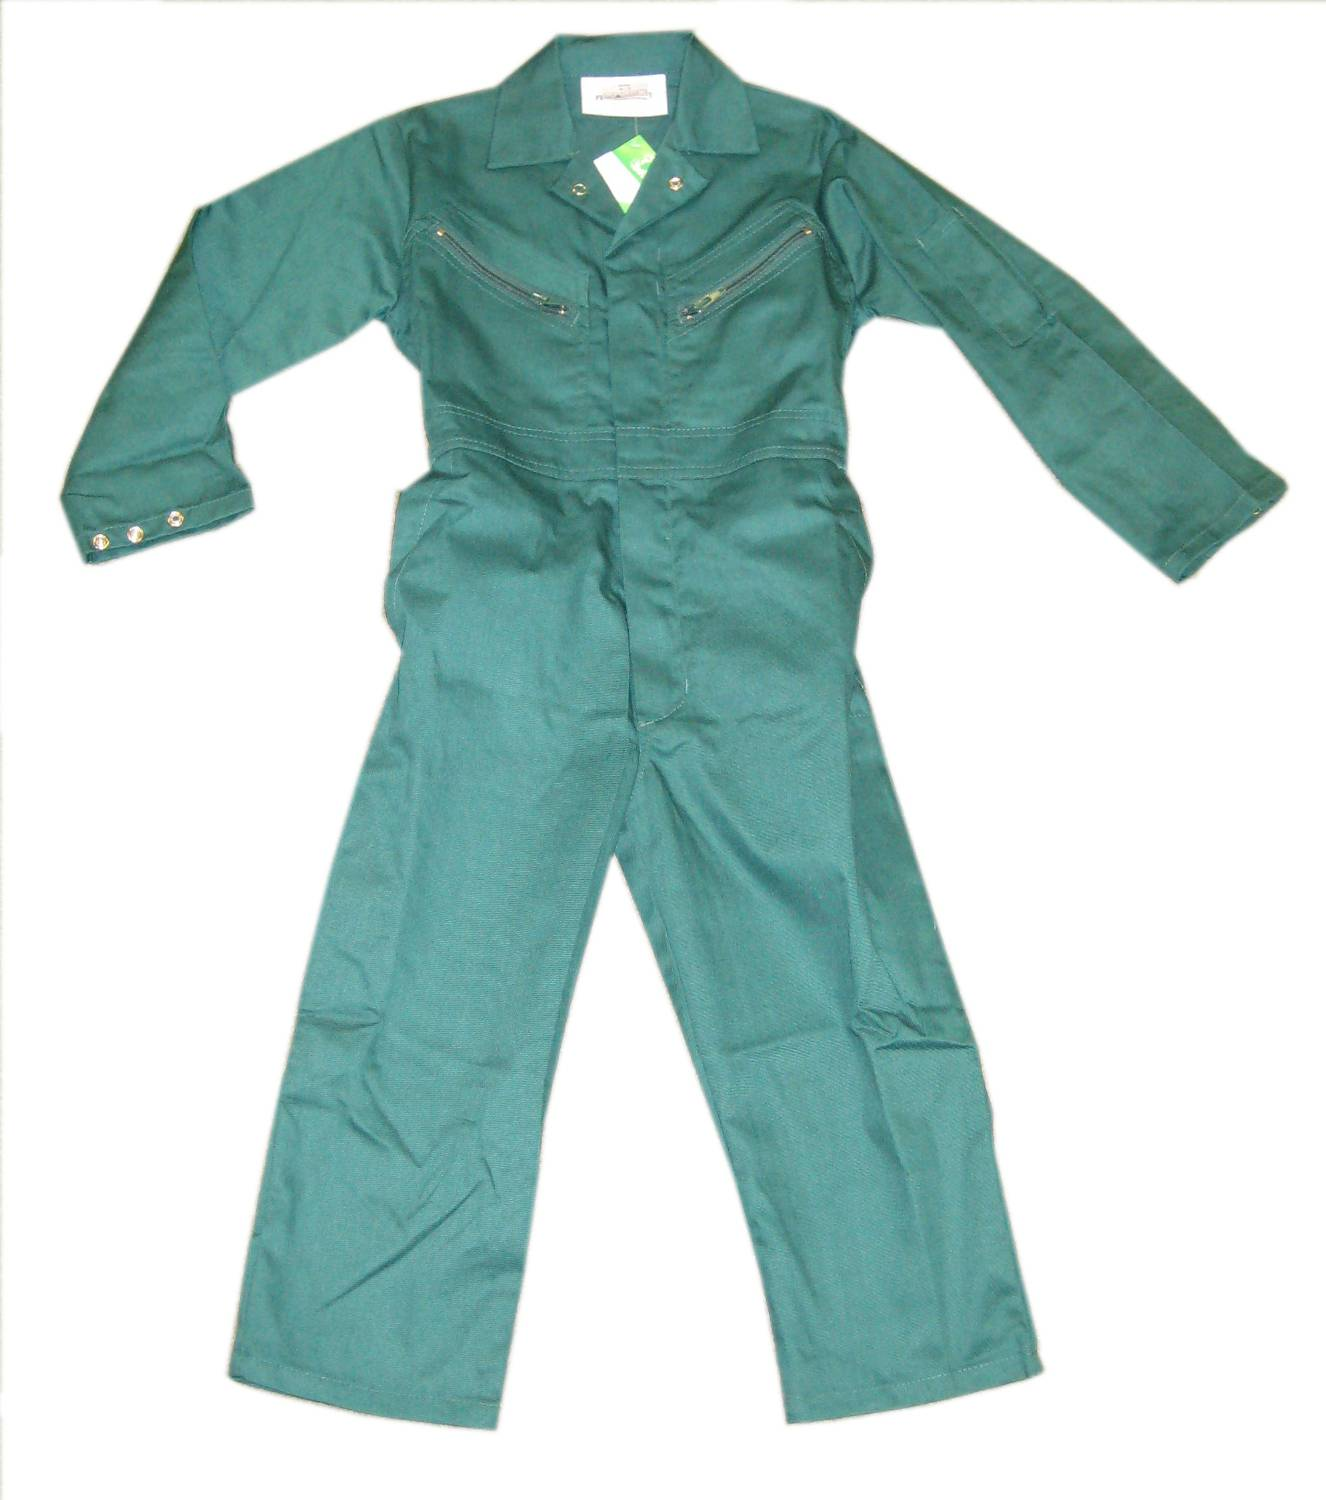 Monsoon Tractor Suit Green 10/11 Yrs Xcgg